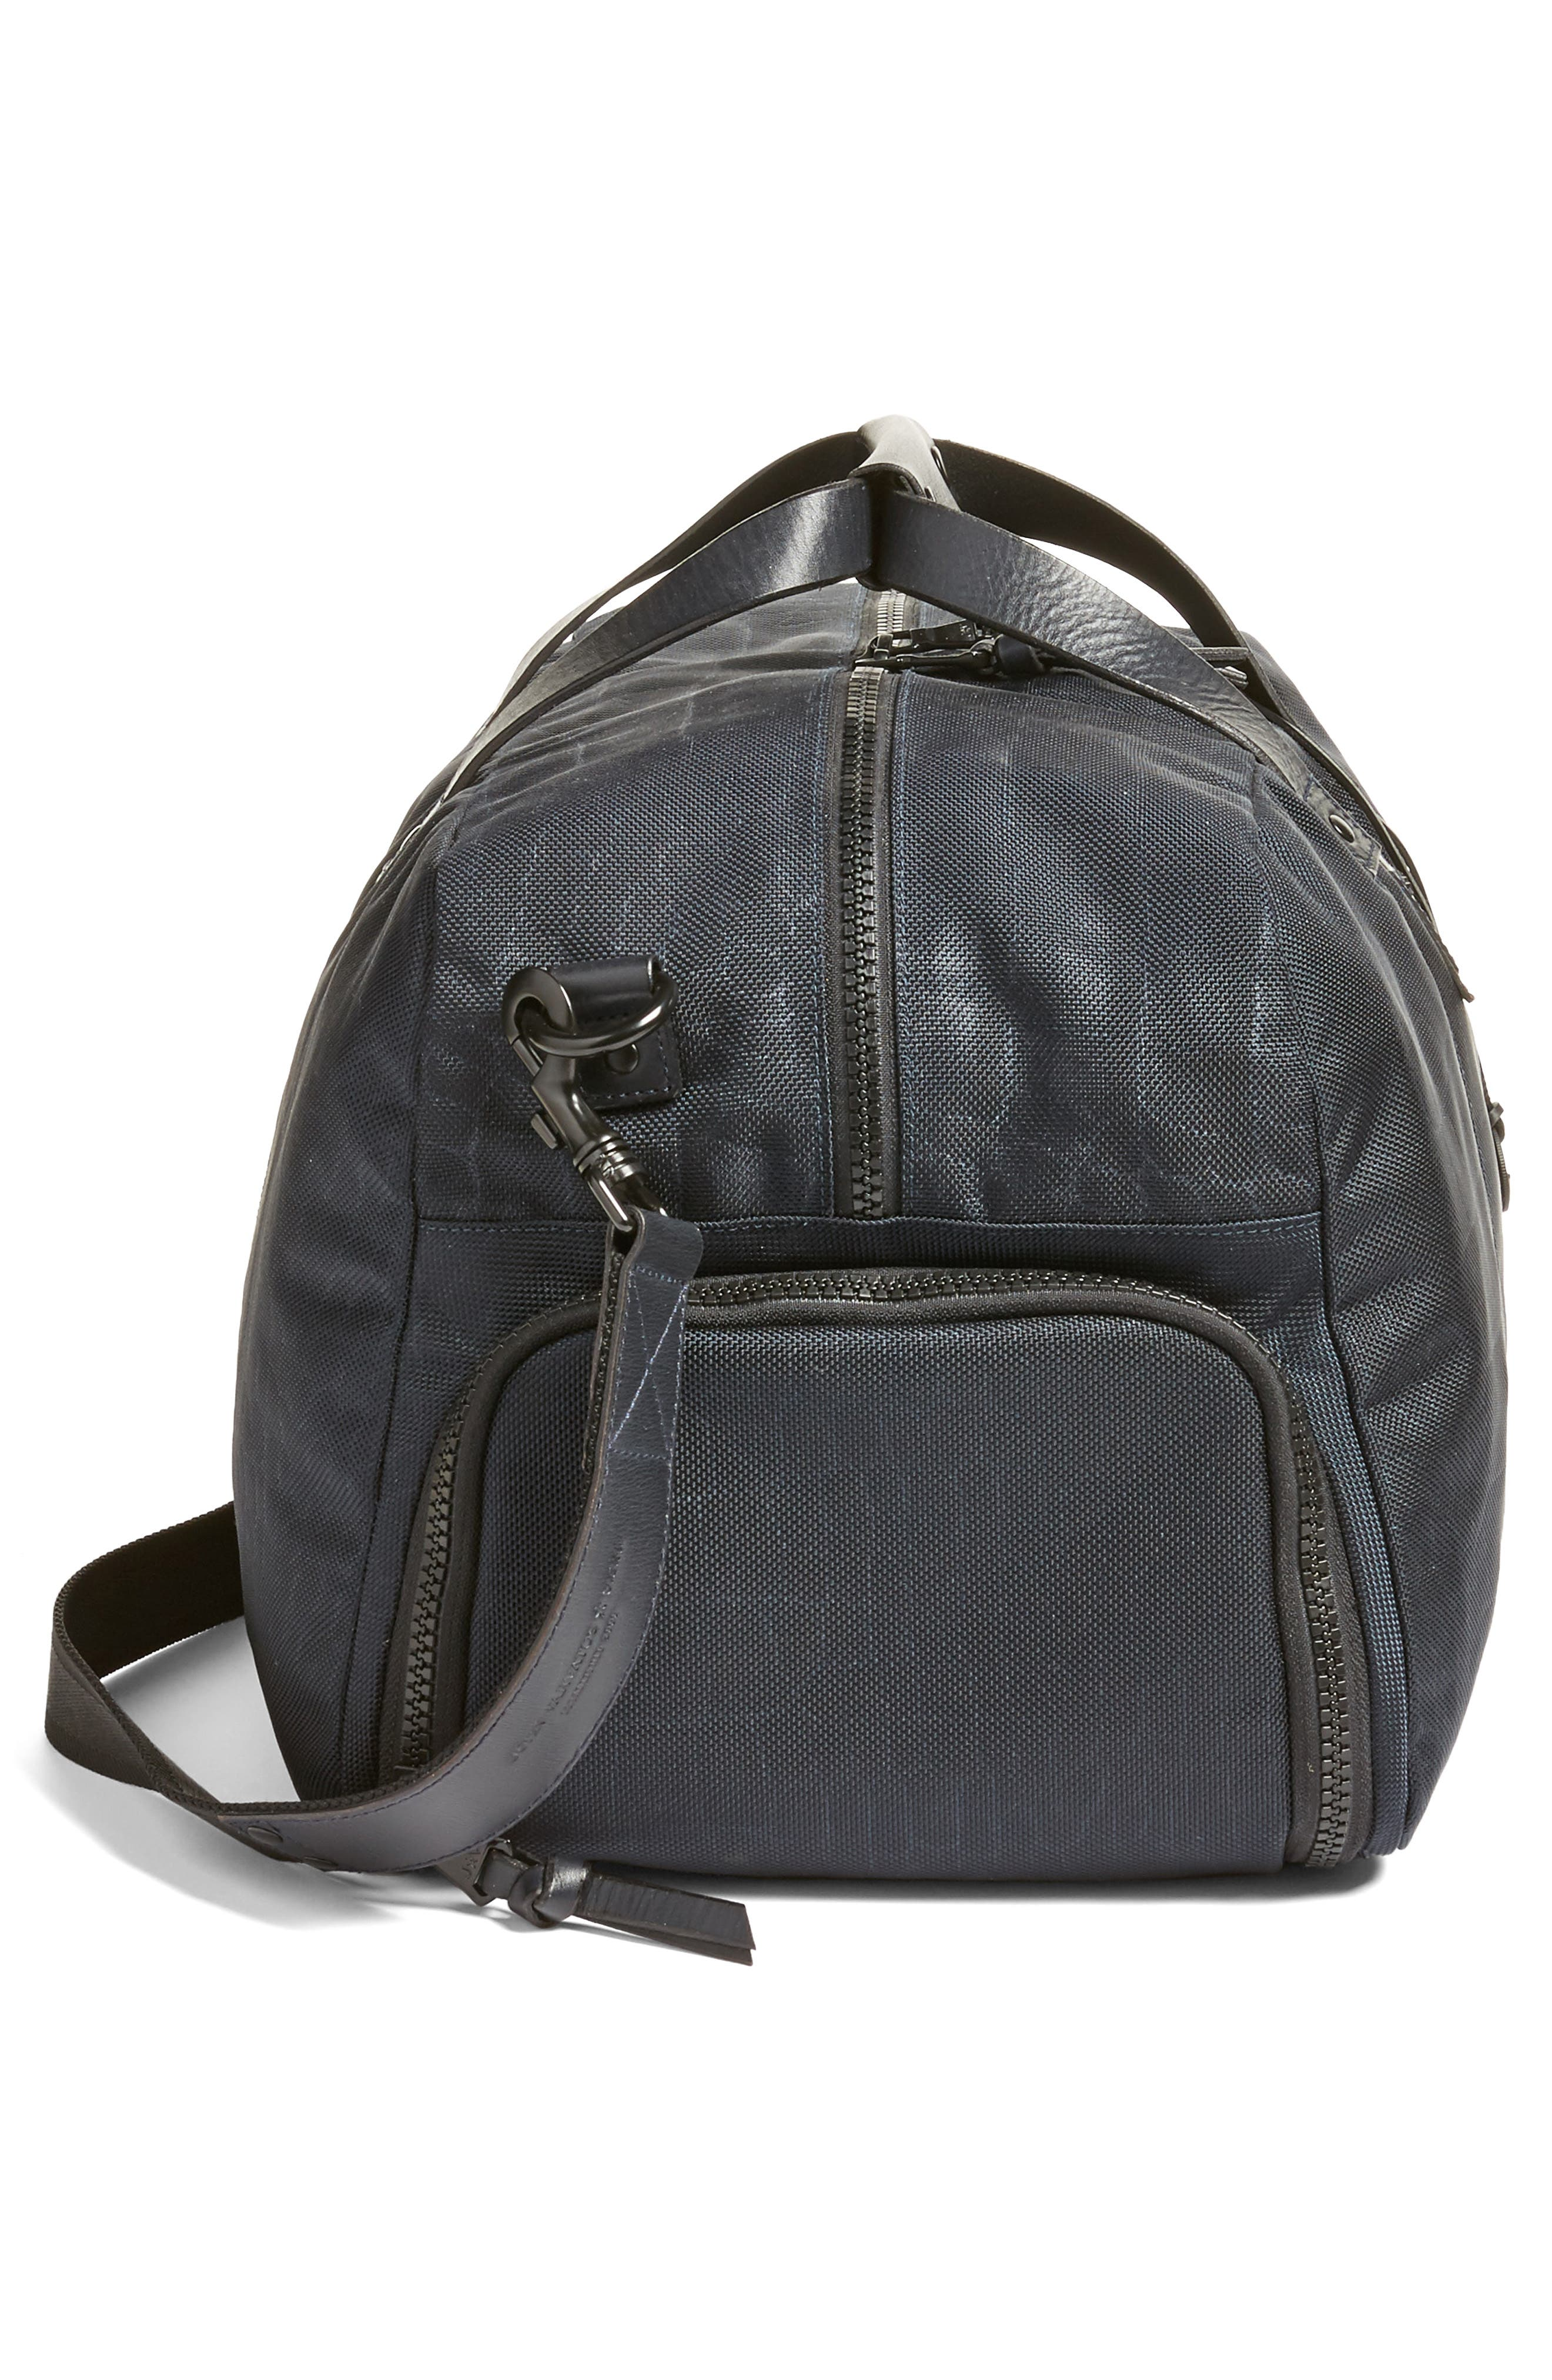 Duffel Bag,                             Alternate thumbnail 5, color,                             Navy